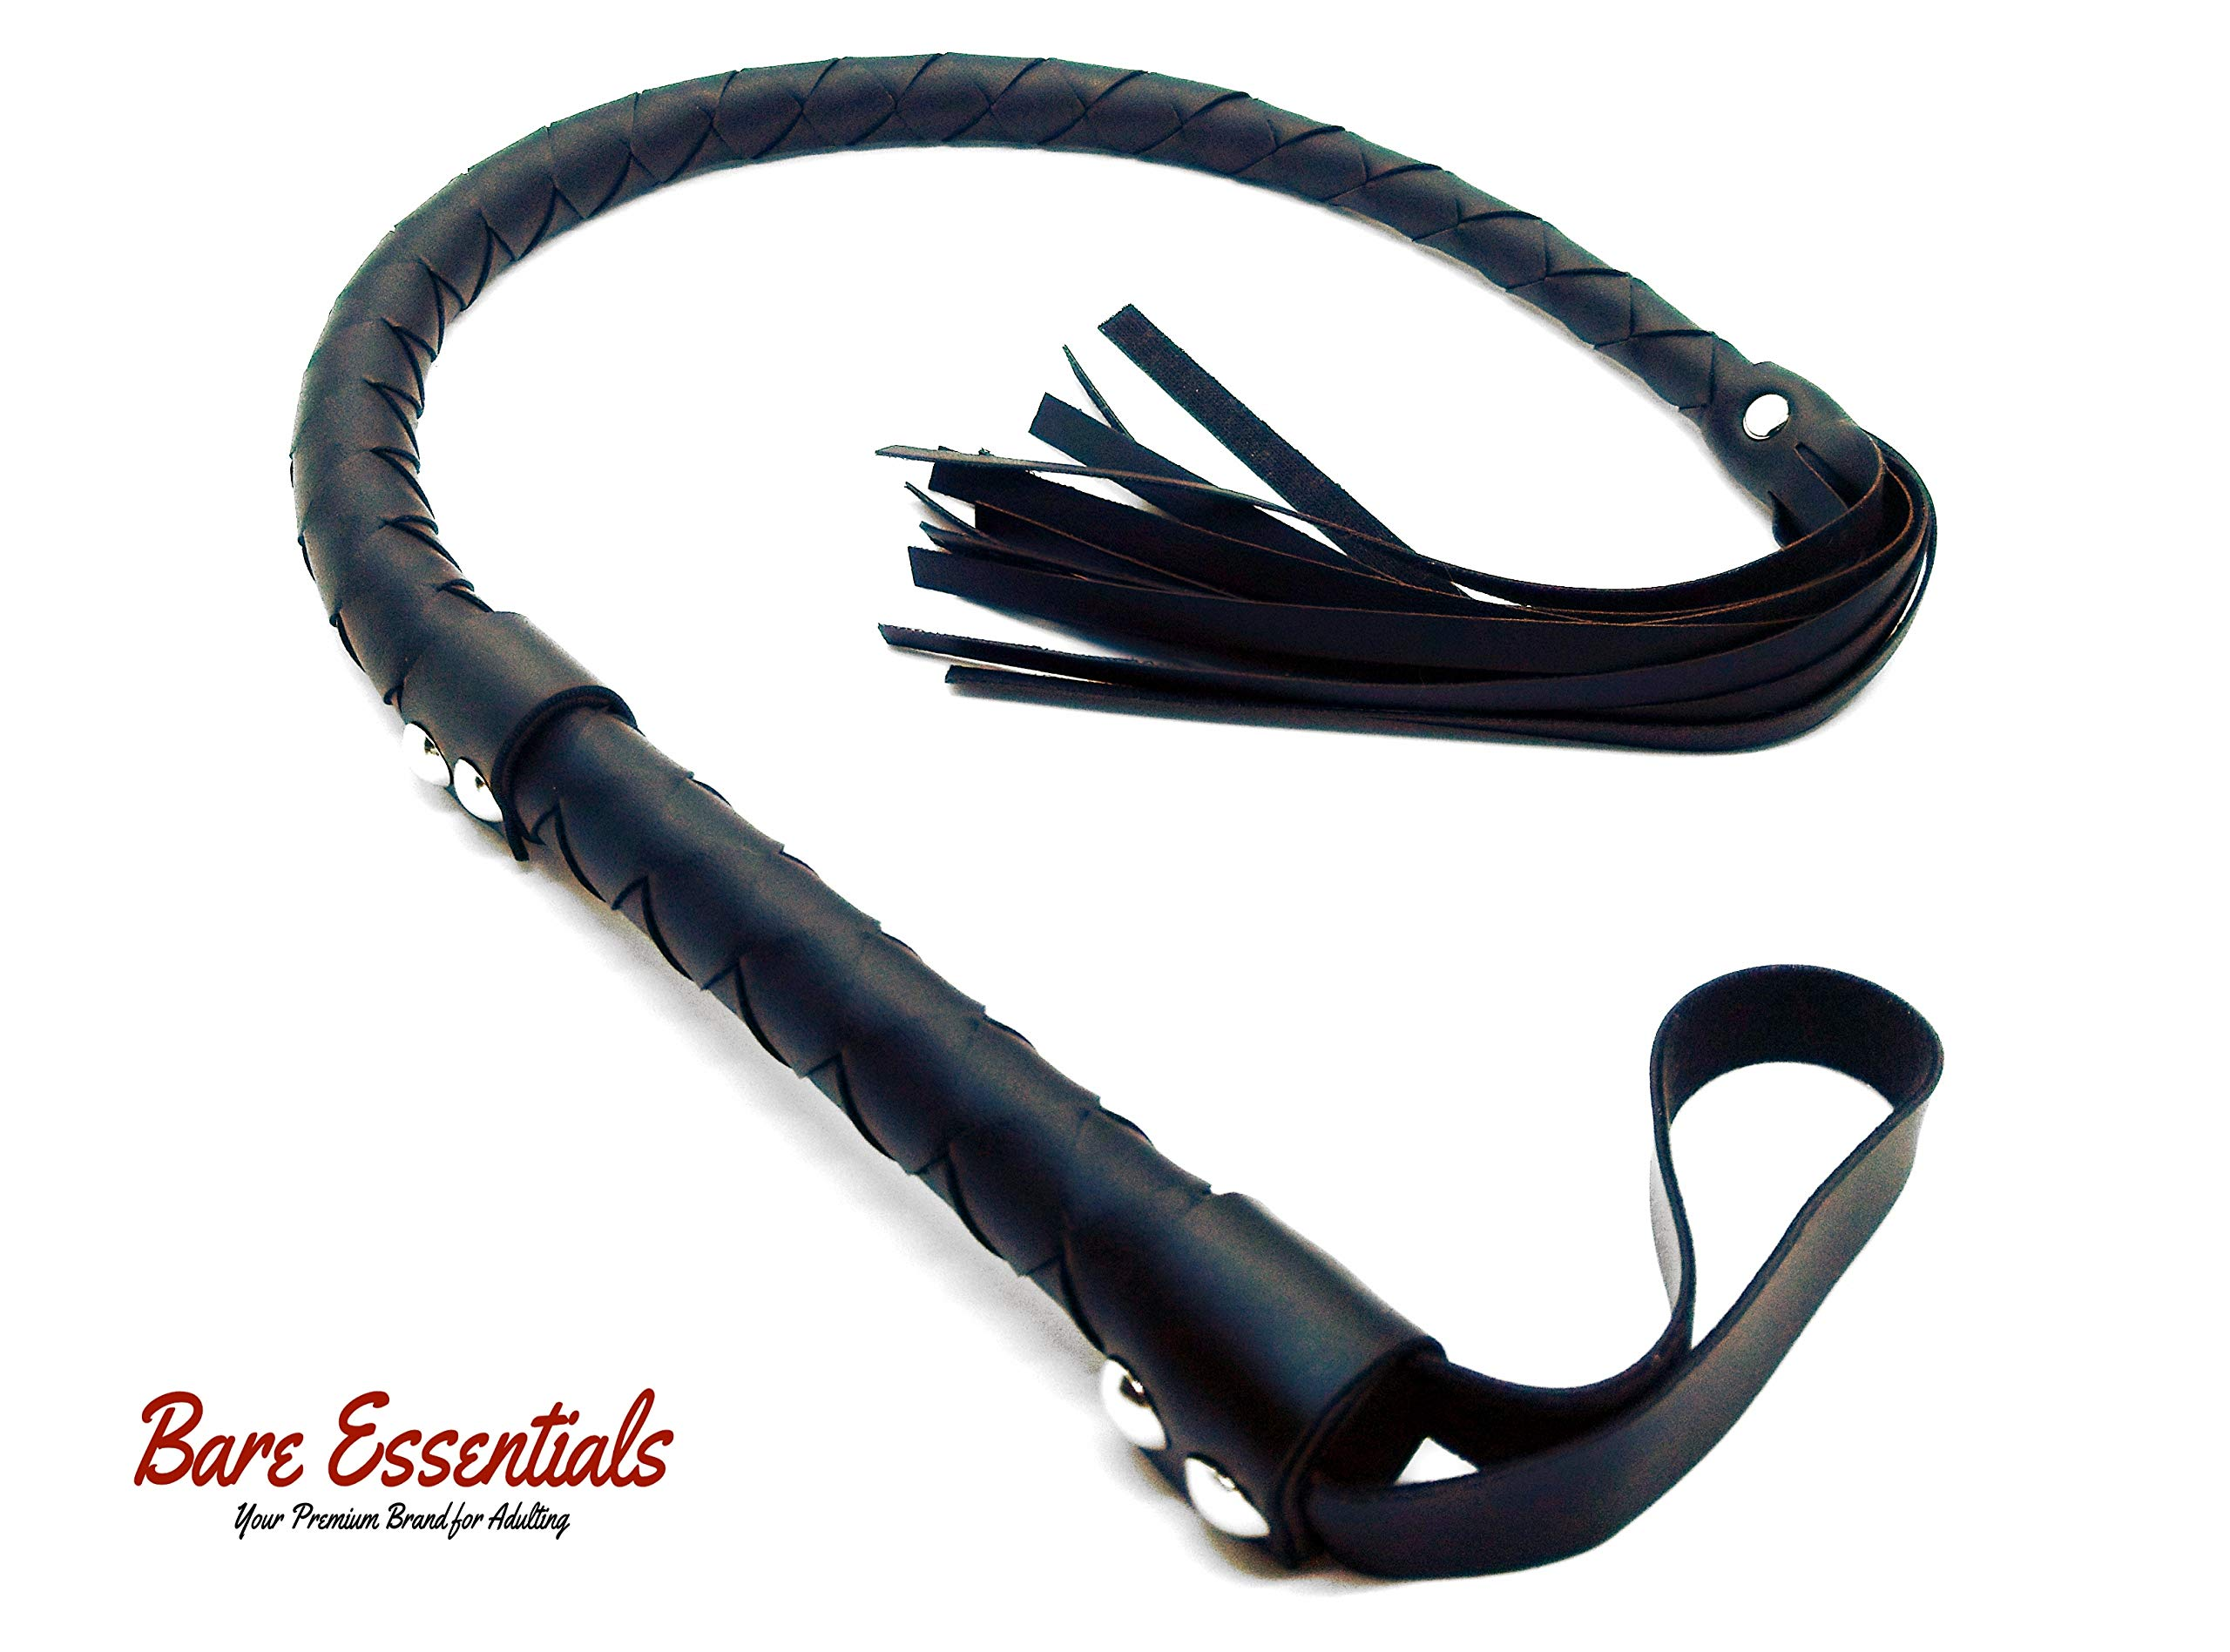 Heavy Duty Genuine Leather Premium Flogger Whip | Ideal for SM, Roleplay, Cosplay, Costumes, Photo/Video Props | 33'' Inches Long Premium Collection by Bare Essentials